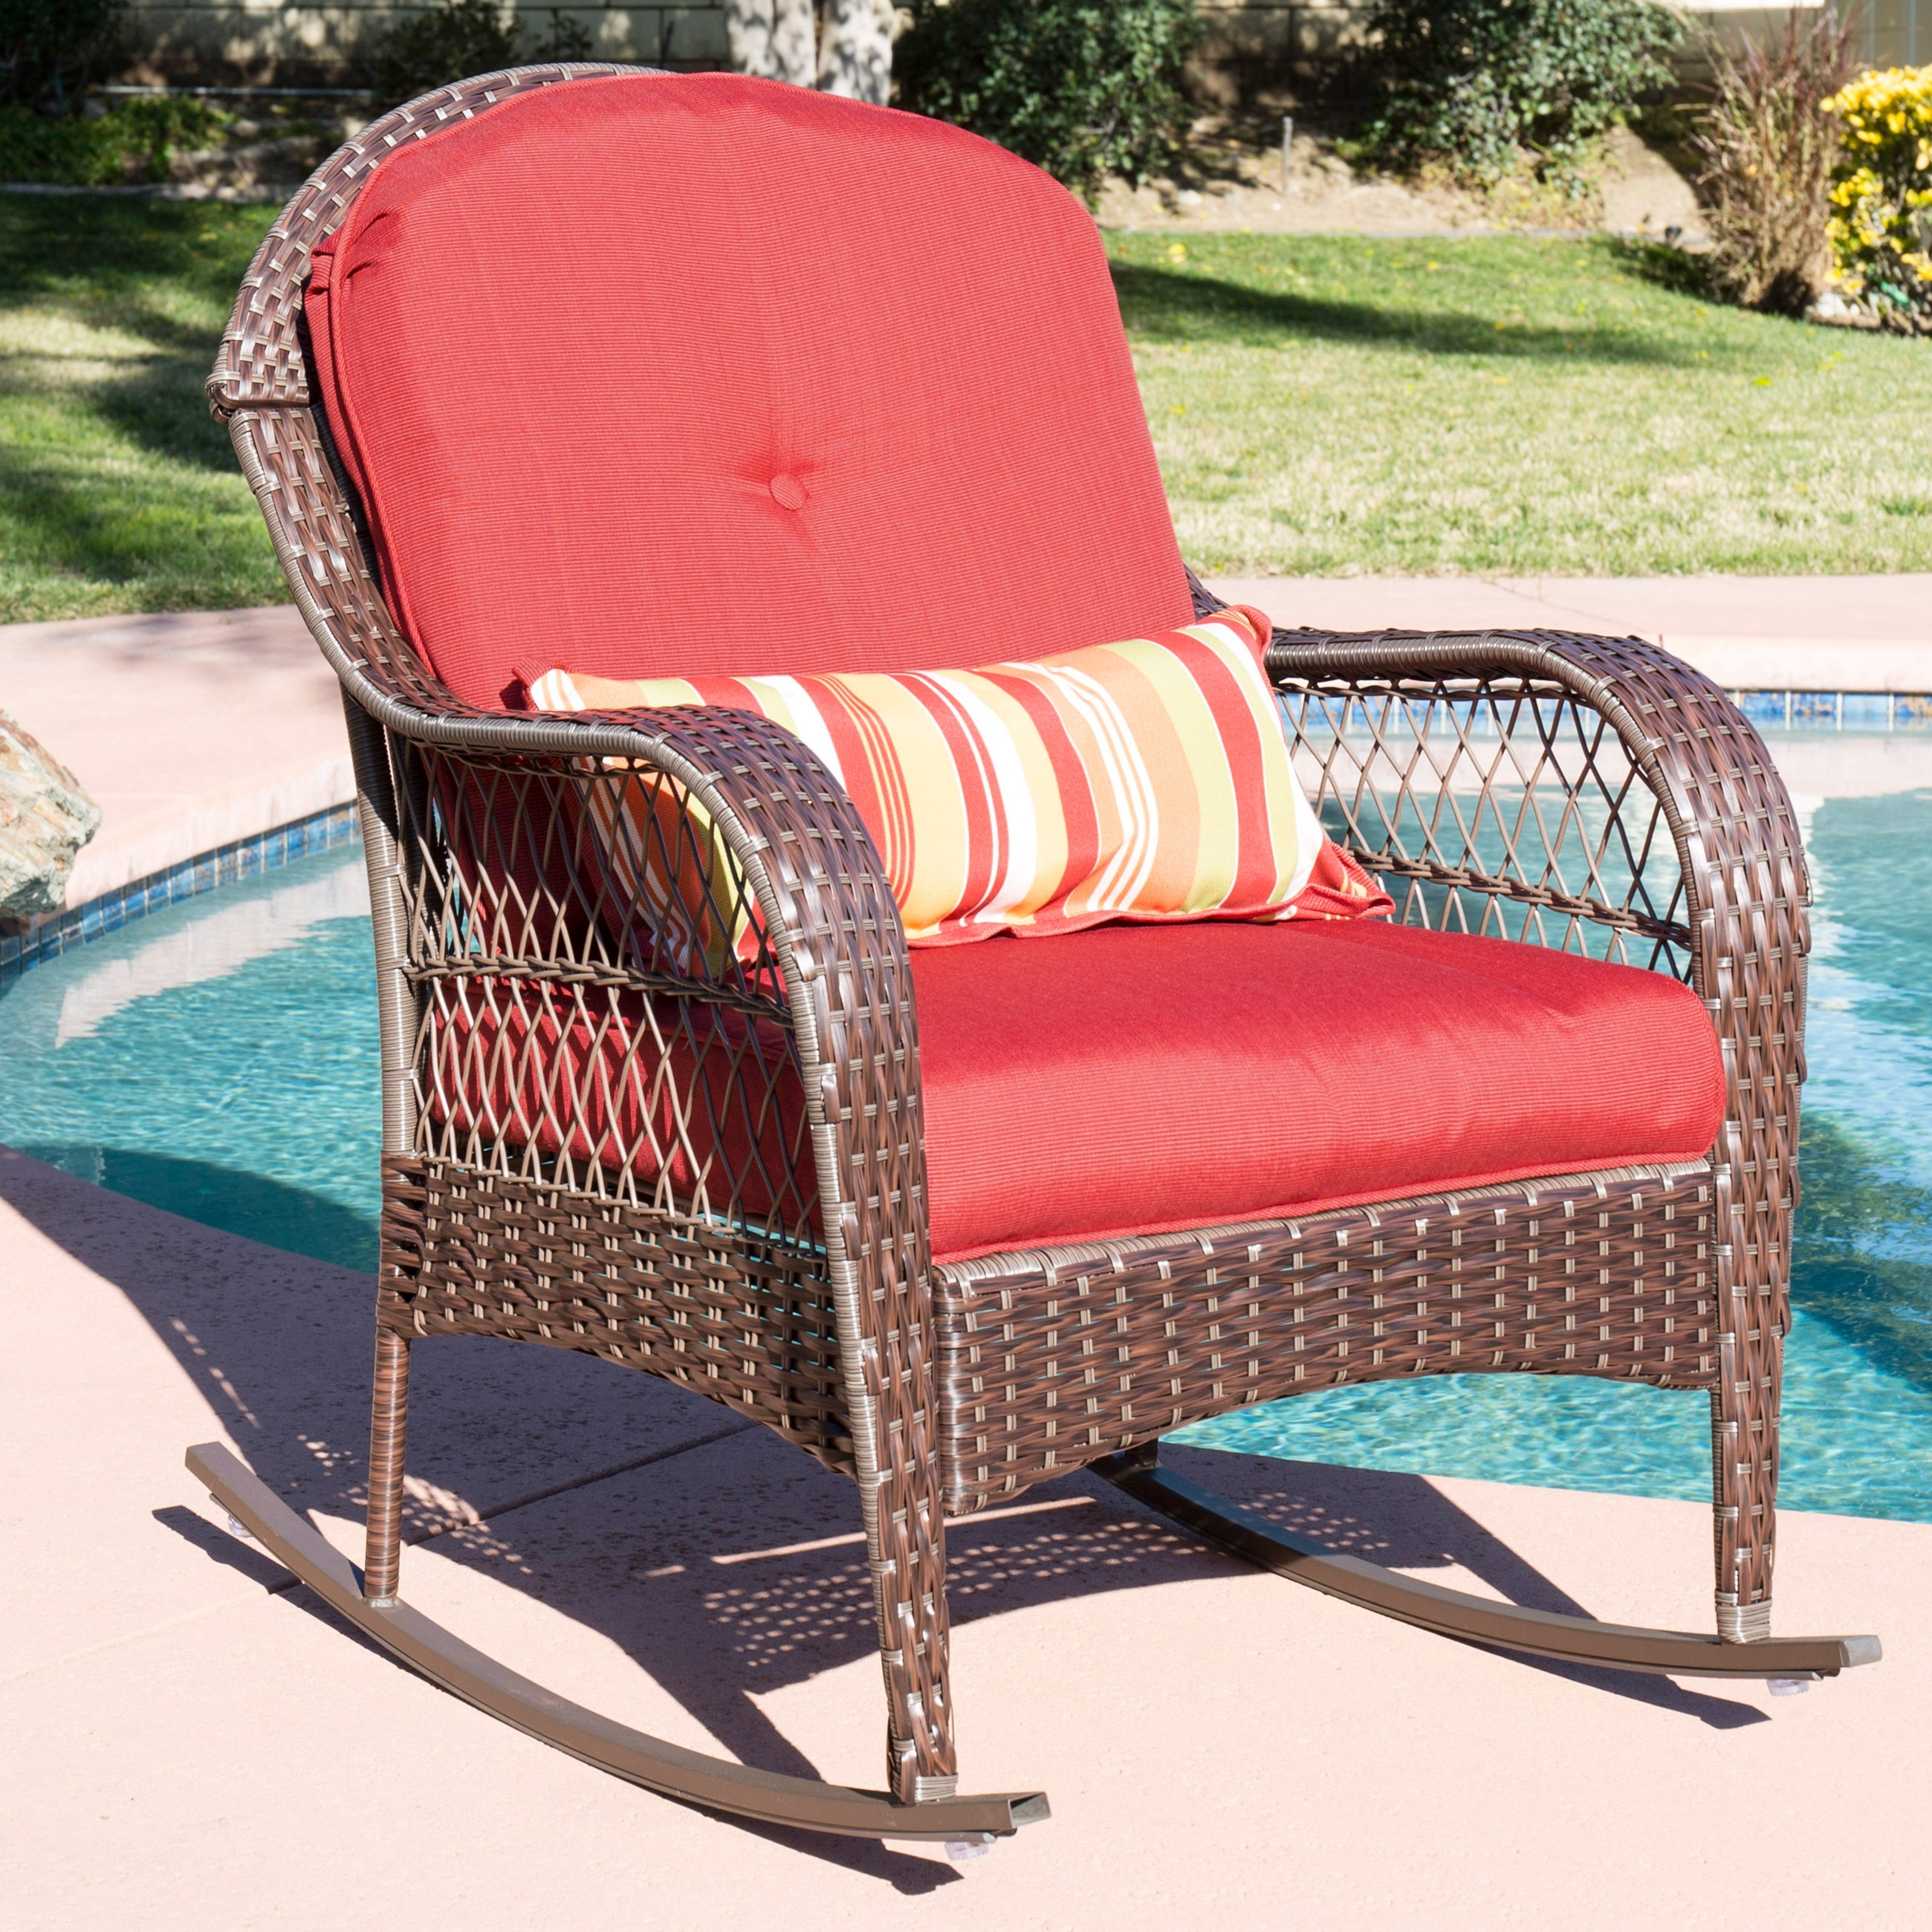 Outdoor Wicker Rocking Chairs With Cushions Regarding Newest Best Choice Products Wicker Rocking Chair Patio Porch Deck Furniture (View 14 of 20)